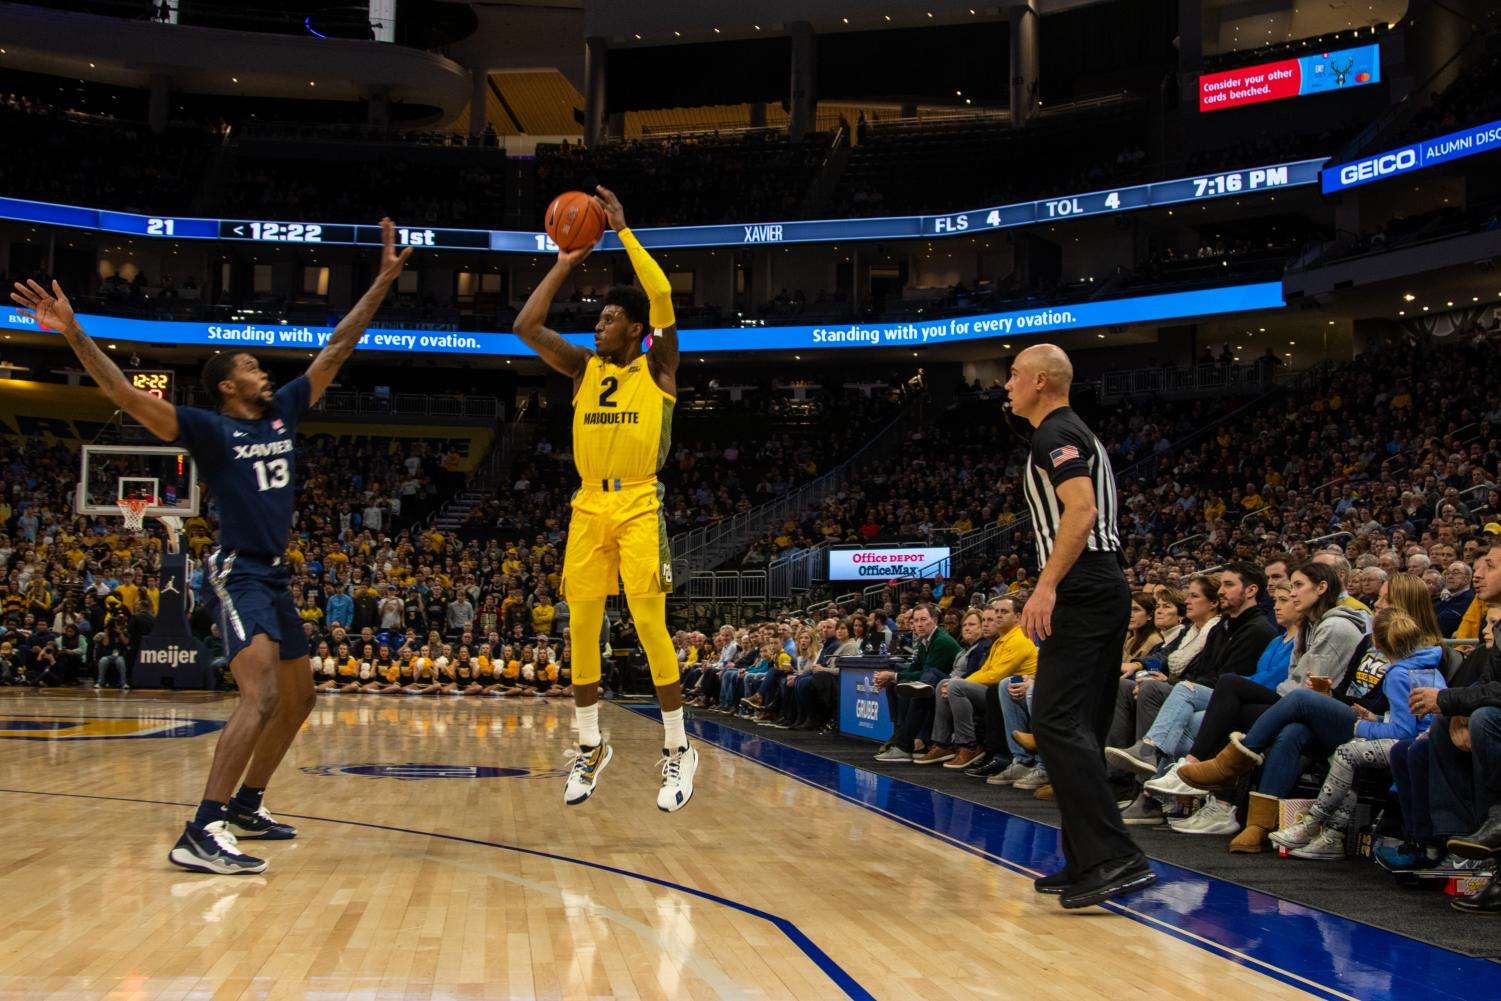 With 12 points Wednesday night, Sacar Anim (2) broke a three-game streak without double digit scoring totals.